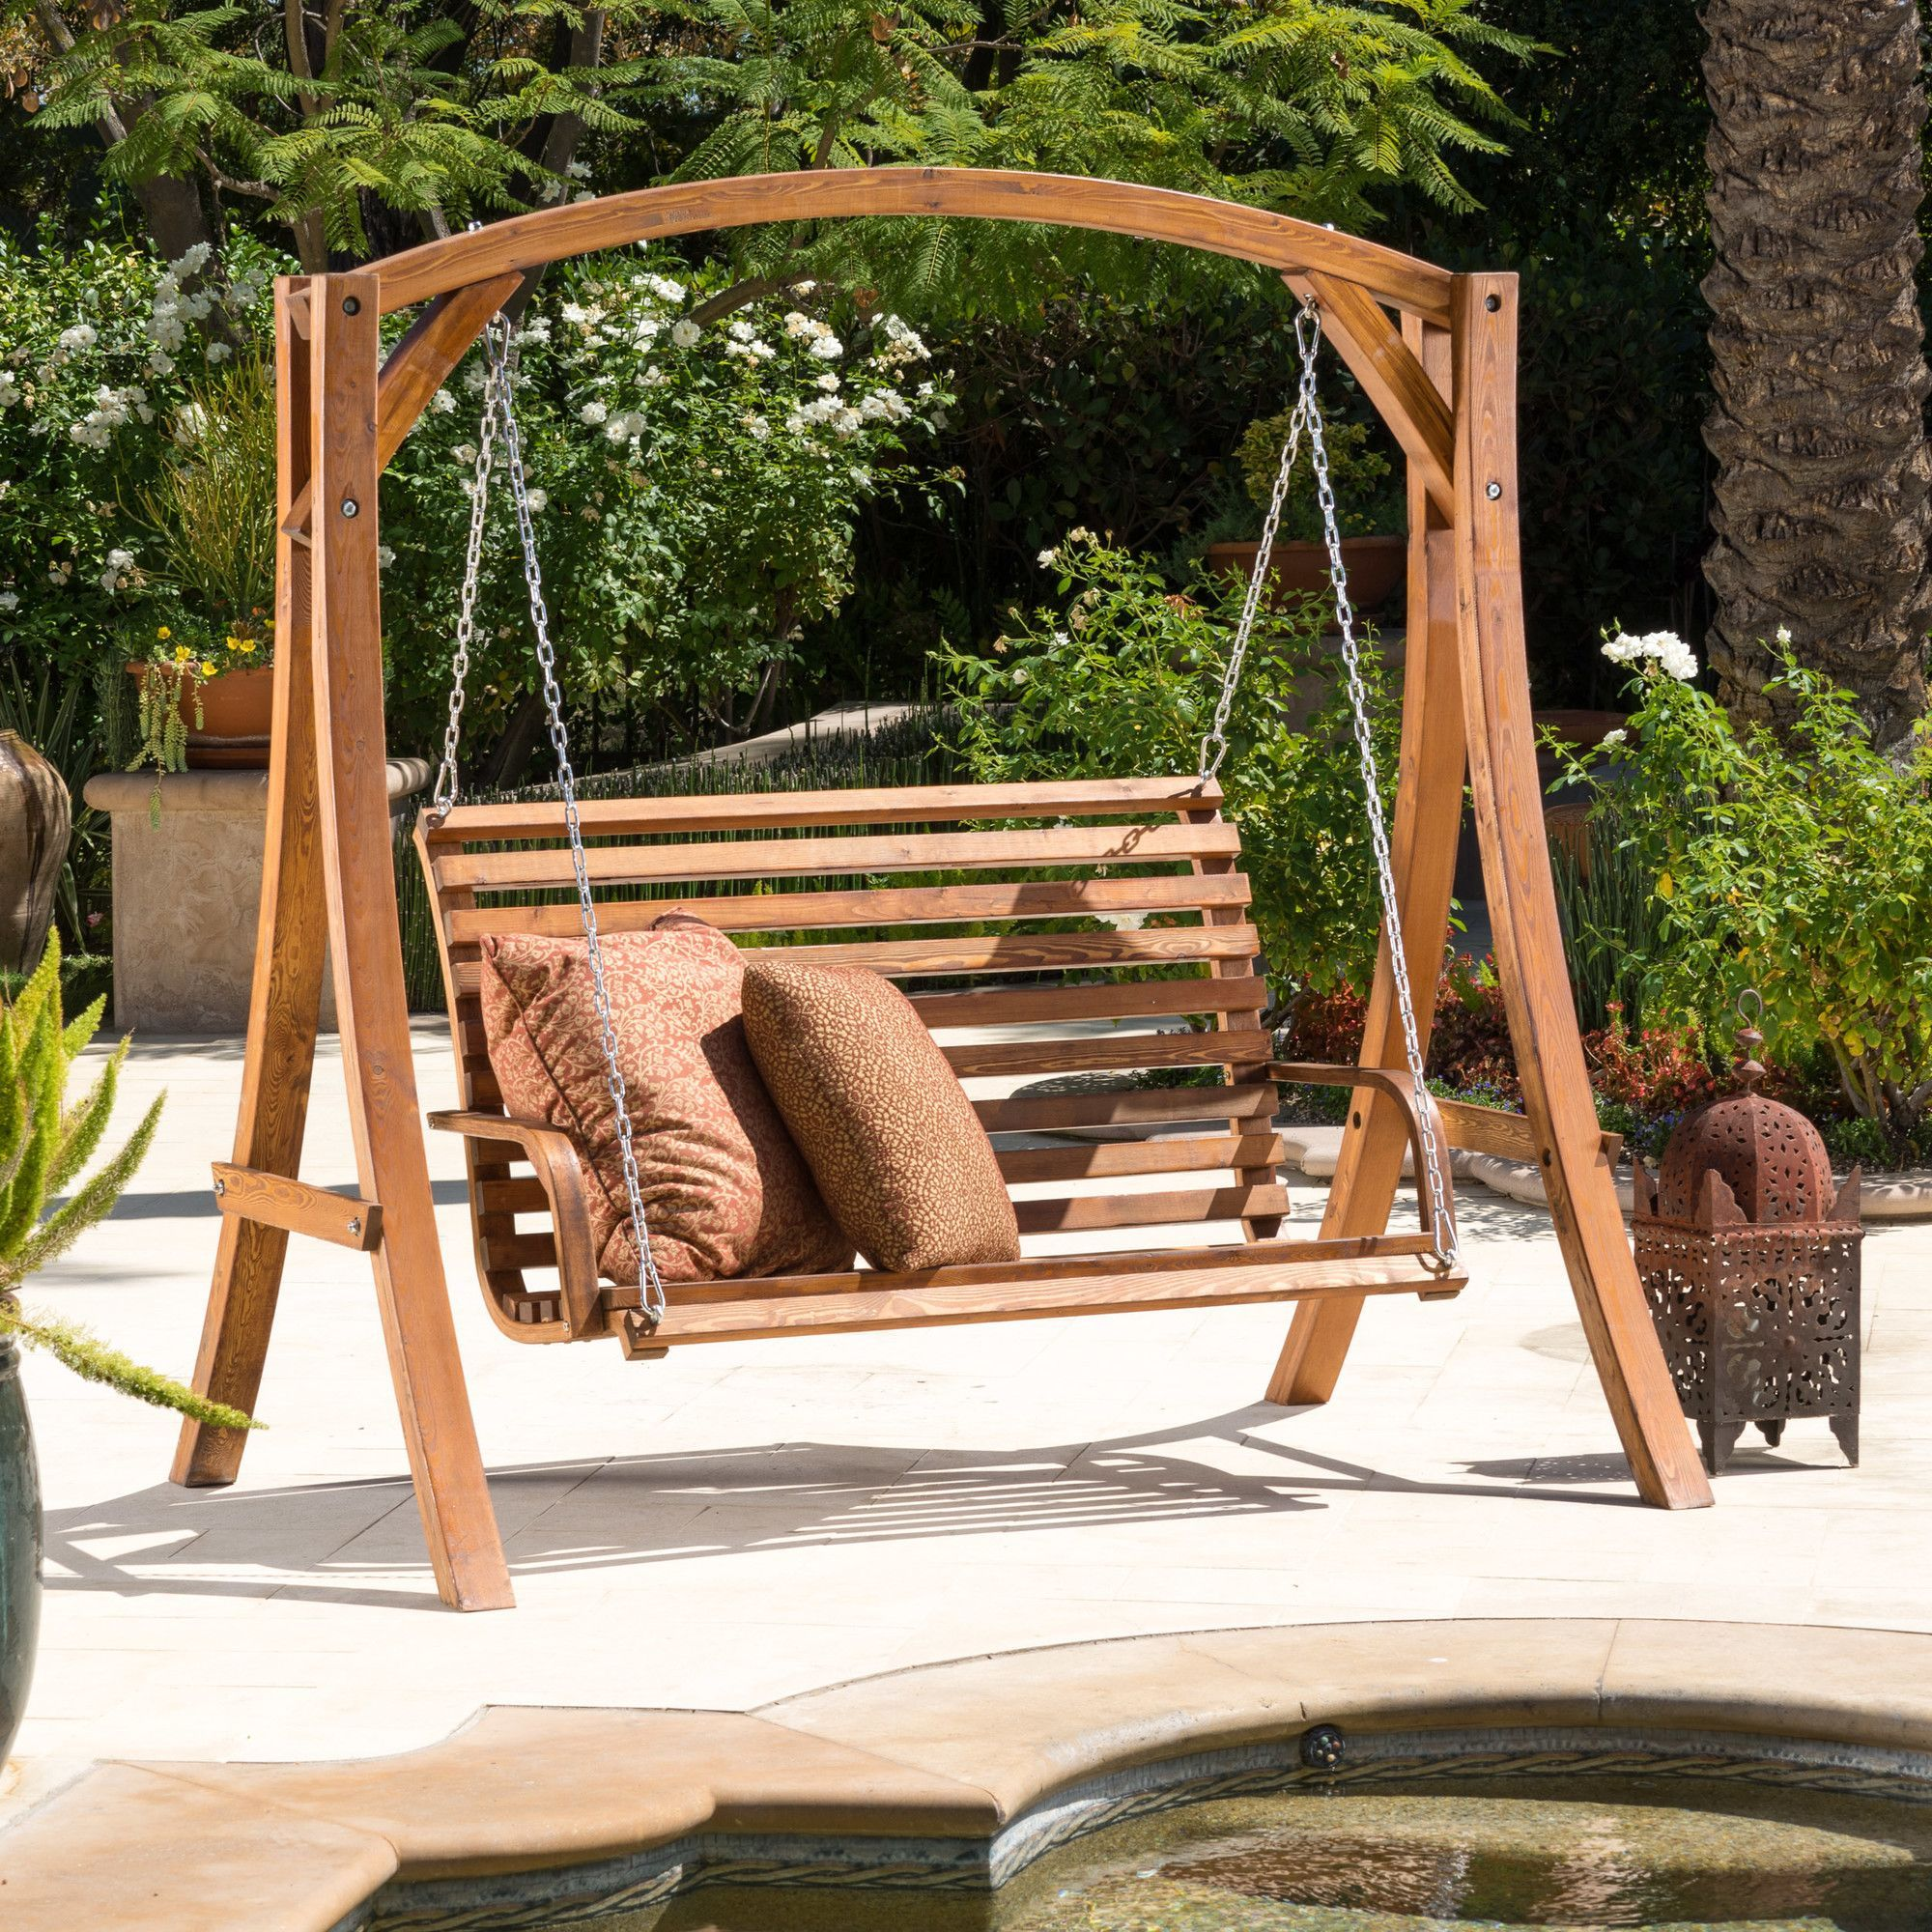 Home Loft Concepts Bracciano Porch Swing with Stand & Reviews ...